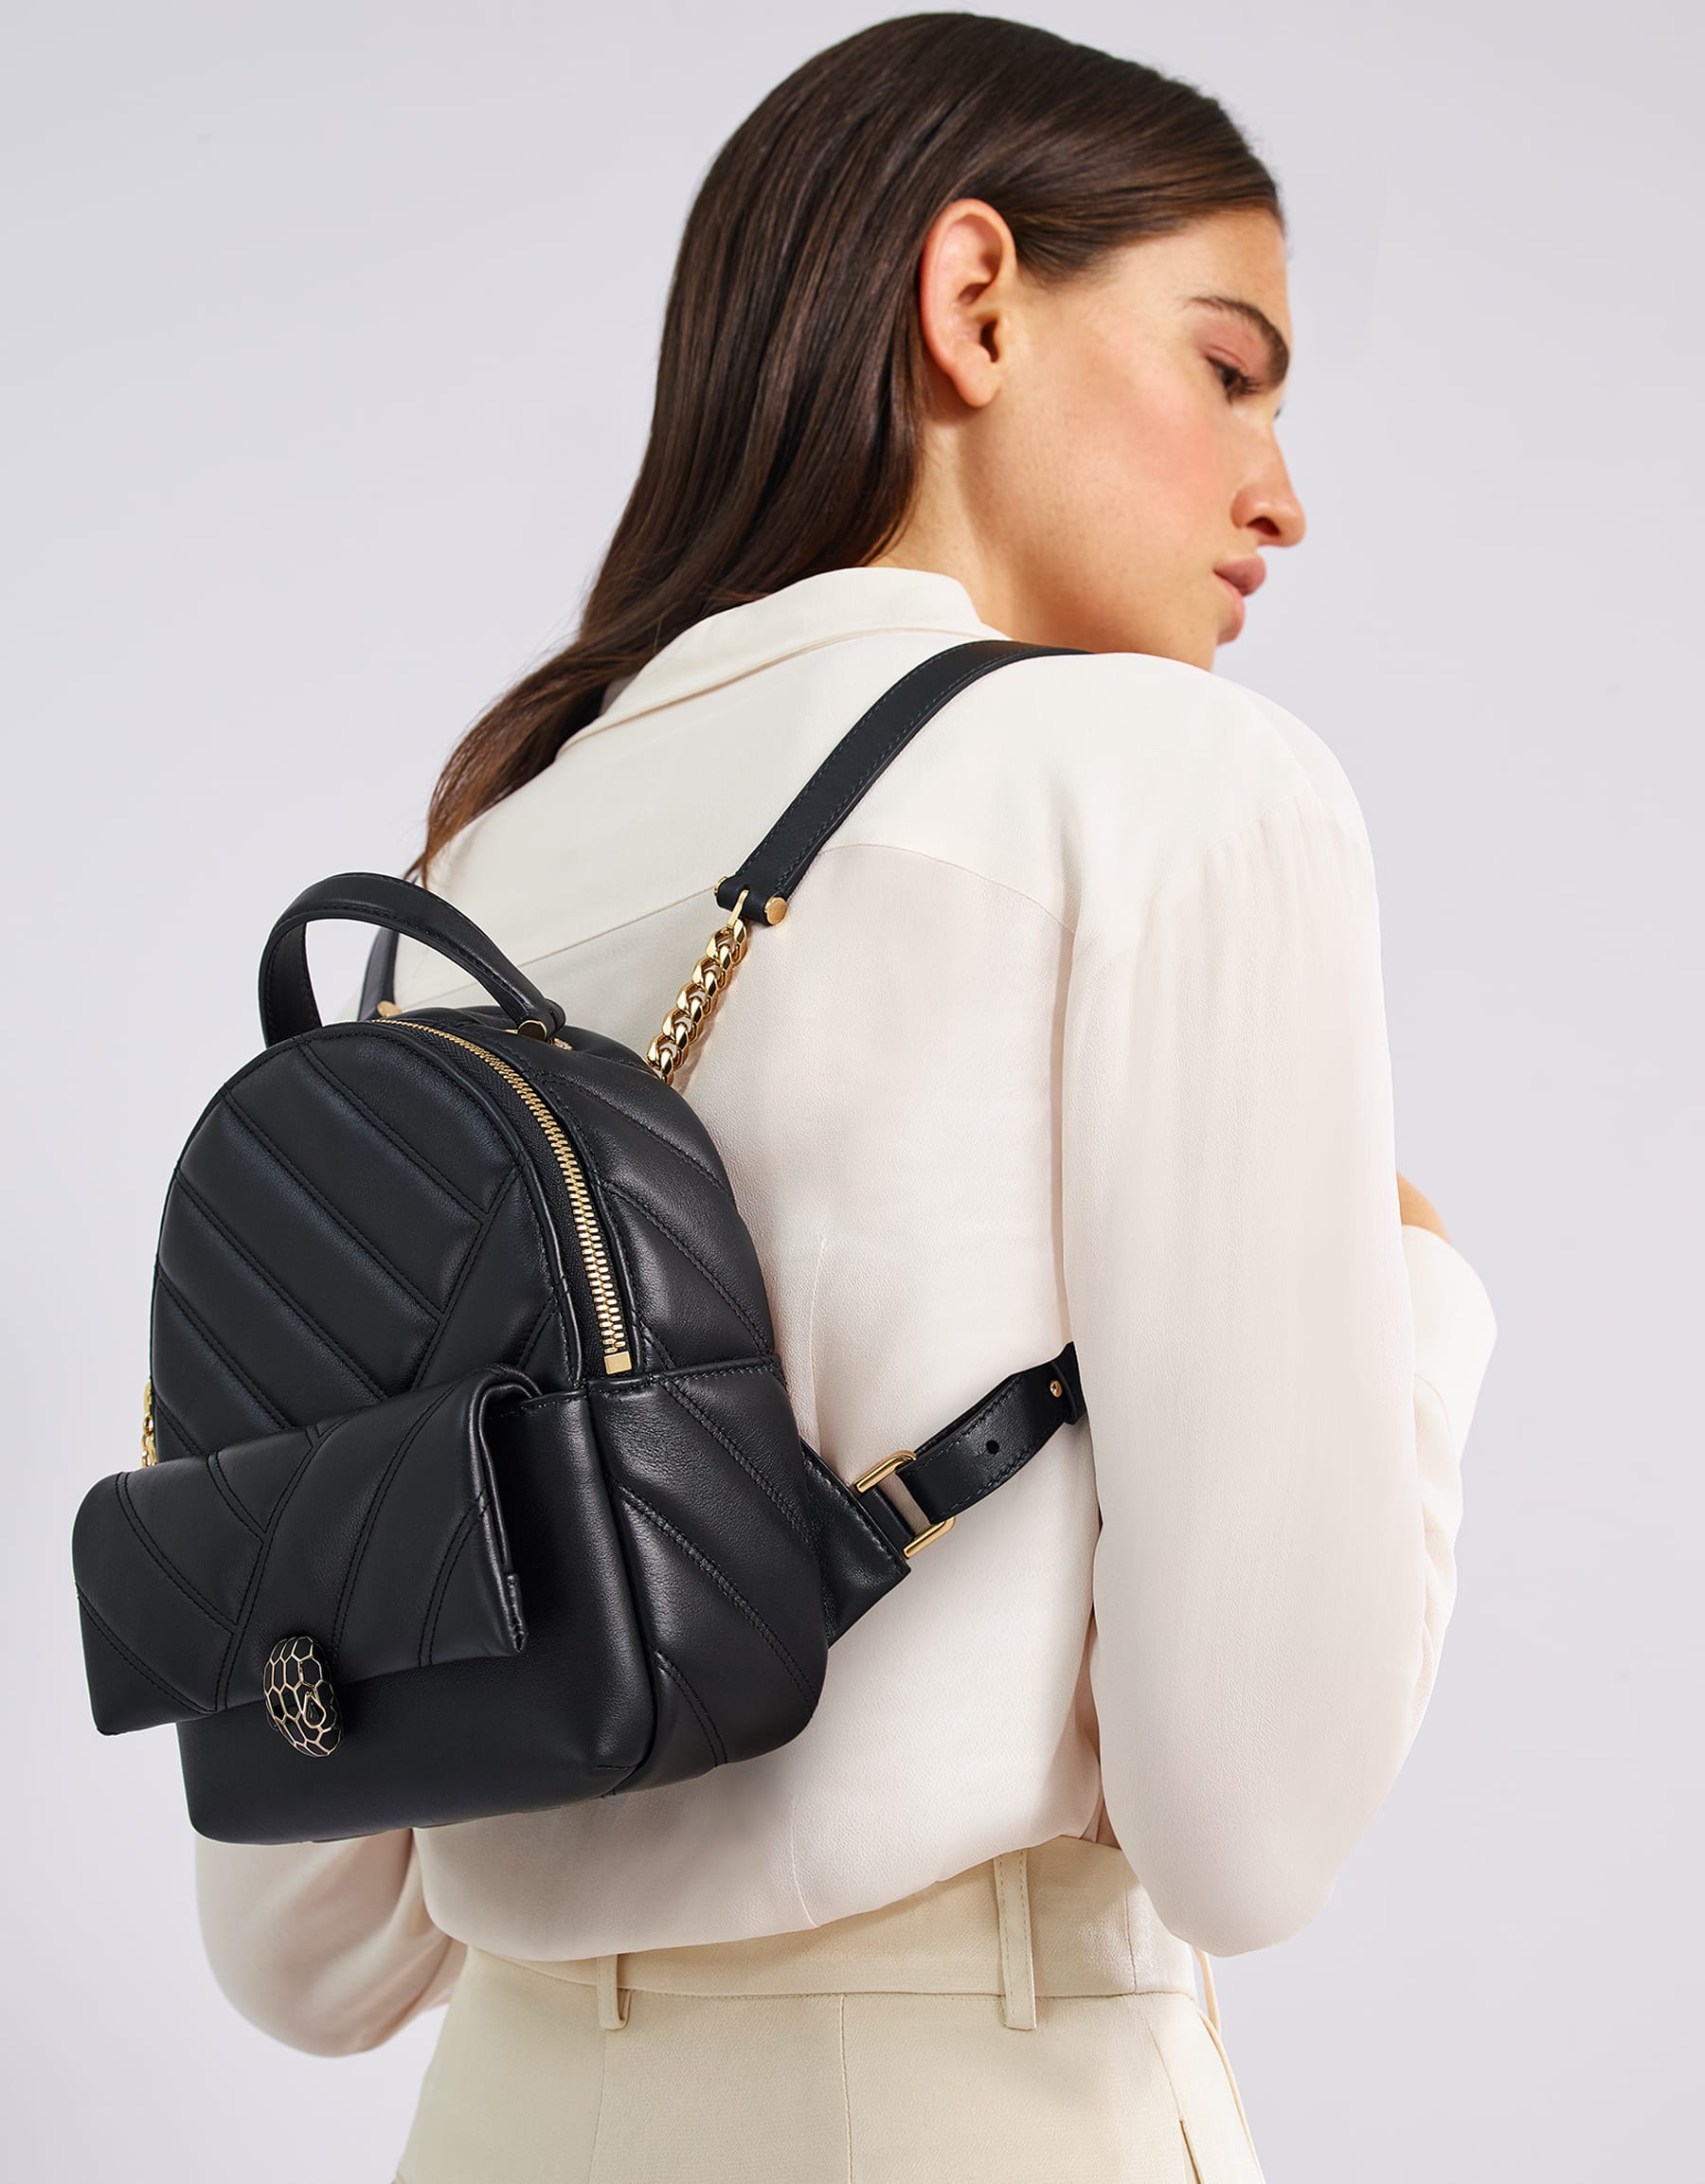 Serpenti Cabochon backpack in soft quilted black calf leather, with a graphic motif. Rose gold plated brass tempting snakehead closure in matte and shiny black enamel and black onyx eyes. 288735 image 5